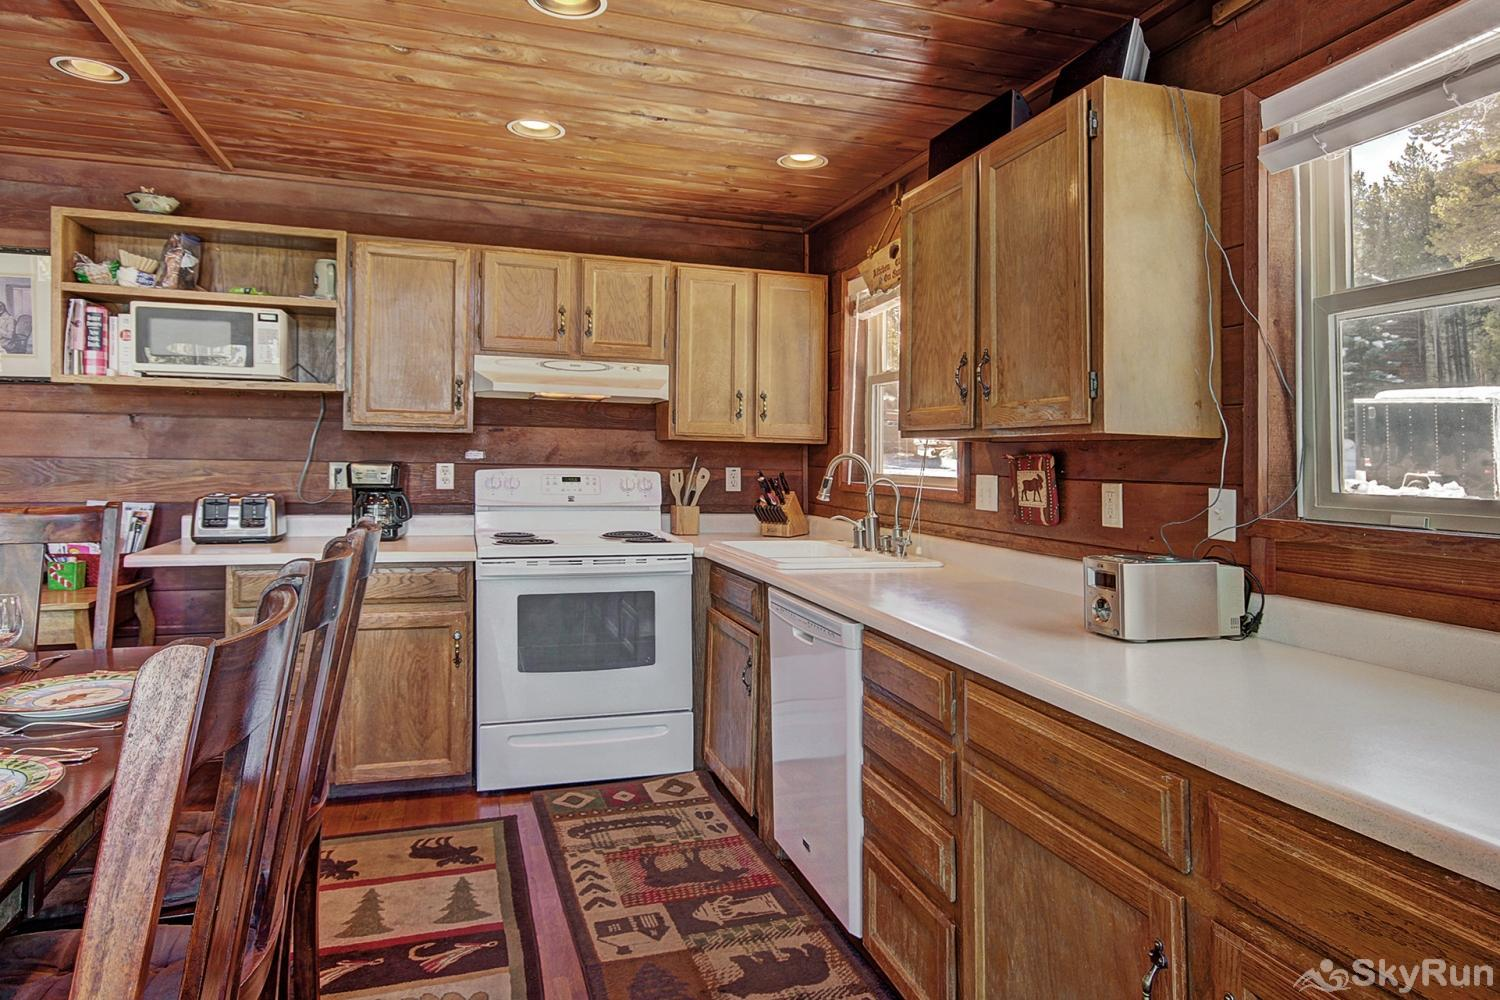 Summit View Chalet Enjoy home cooked meals with the convenience of a fully equipped kitchen